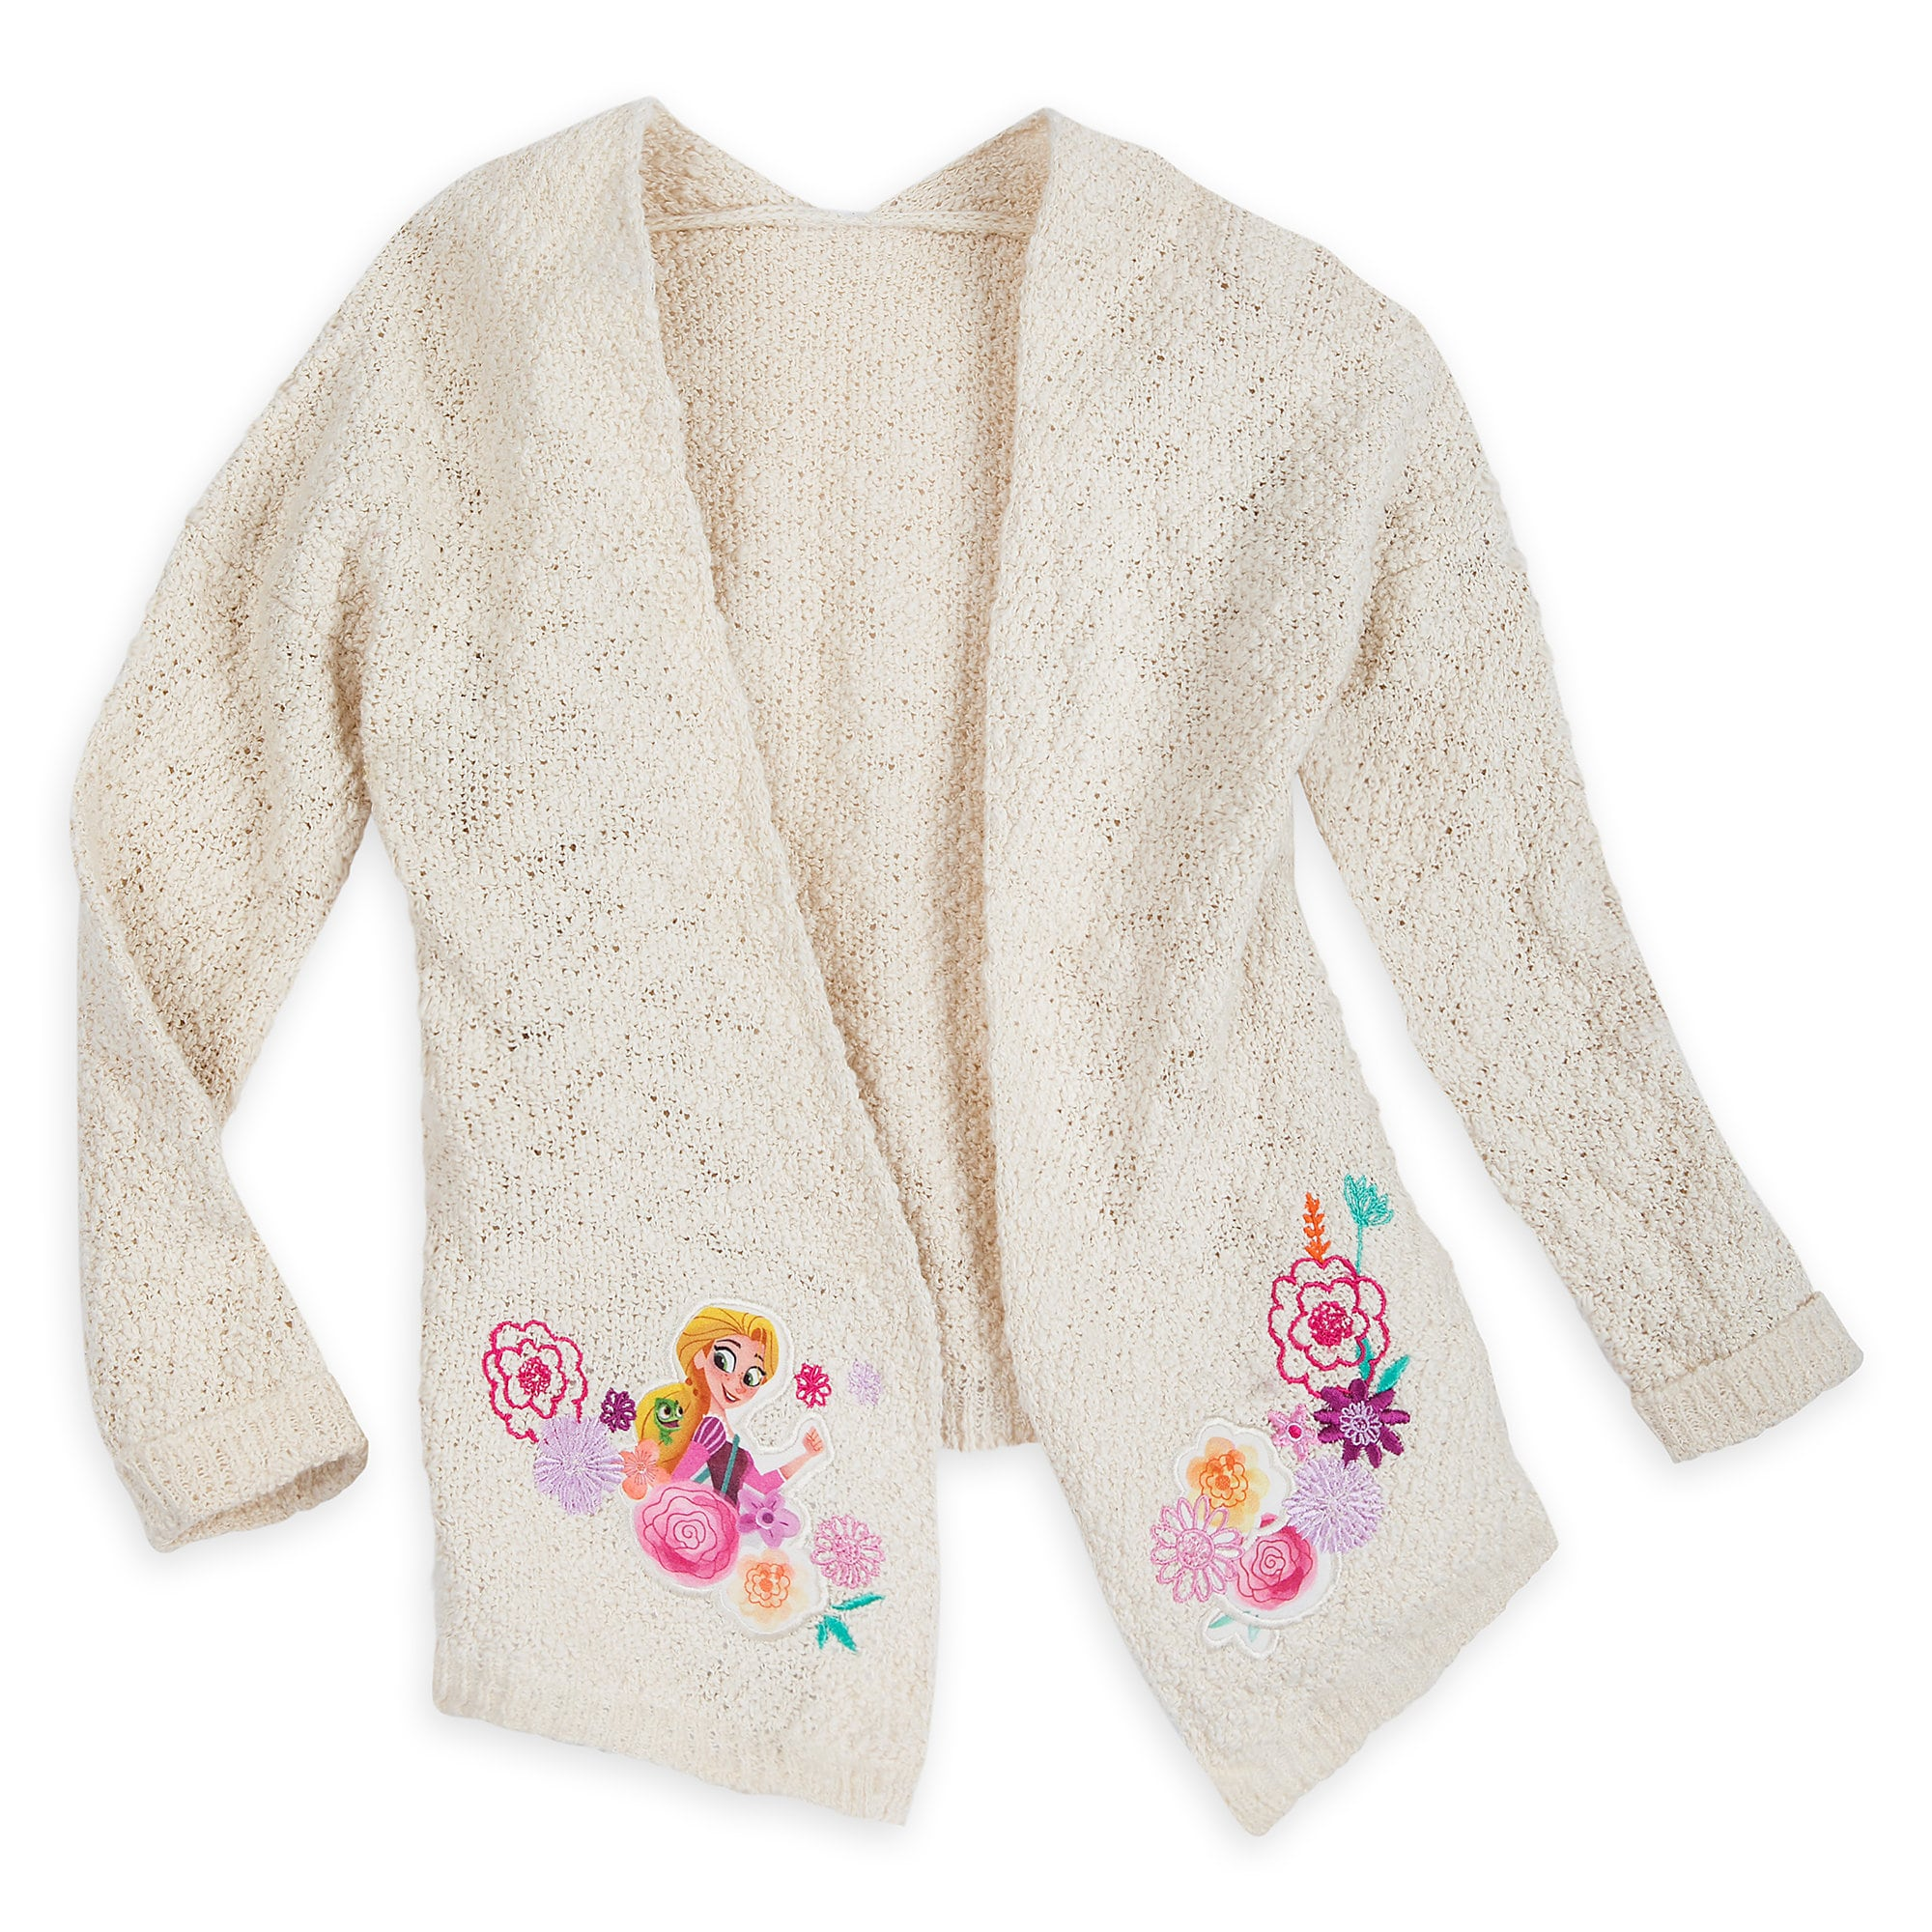 Rapunzel Cardigan Sweater for Girls